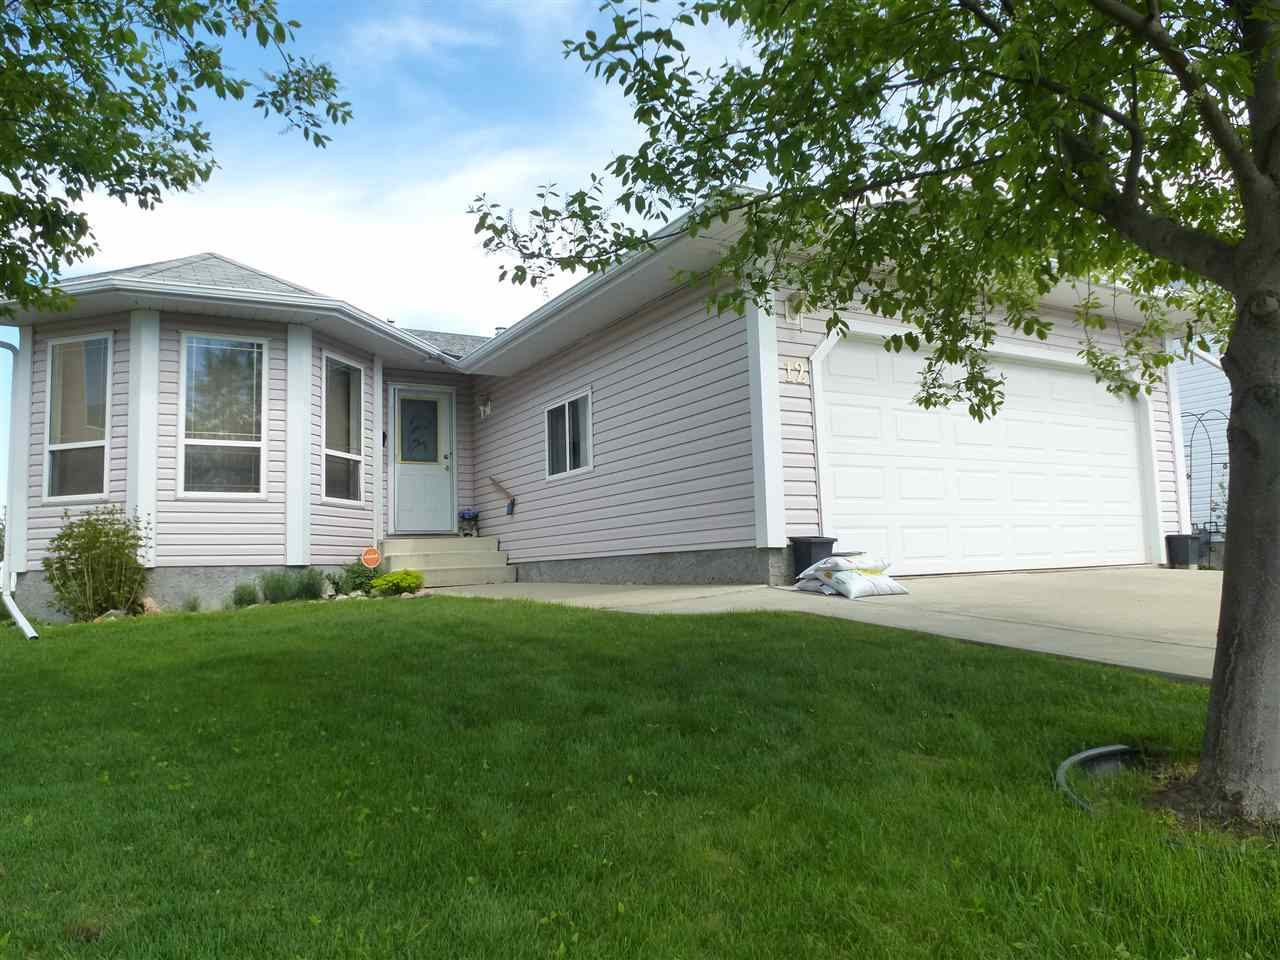 Main Photo: 12 Clearwater Crescent: Wetaskiwin House for sale : MLS(r) # E4060506